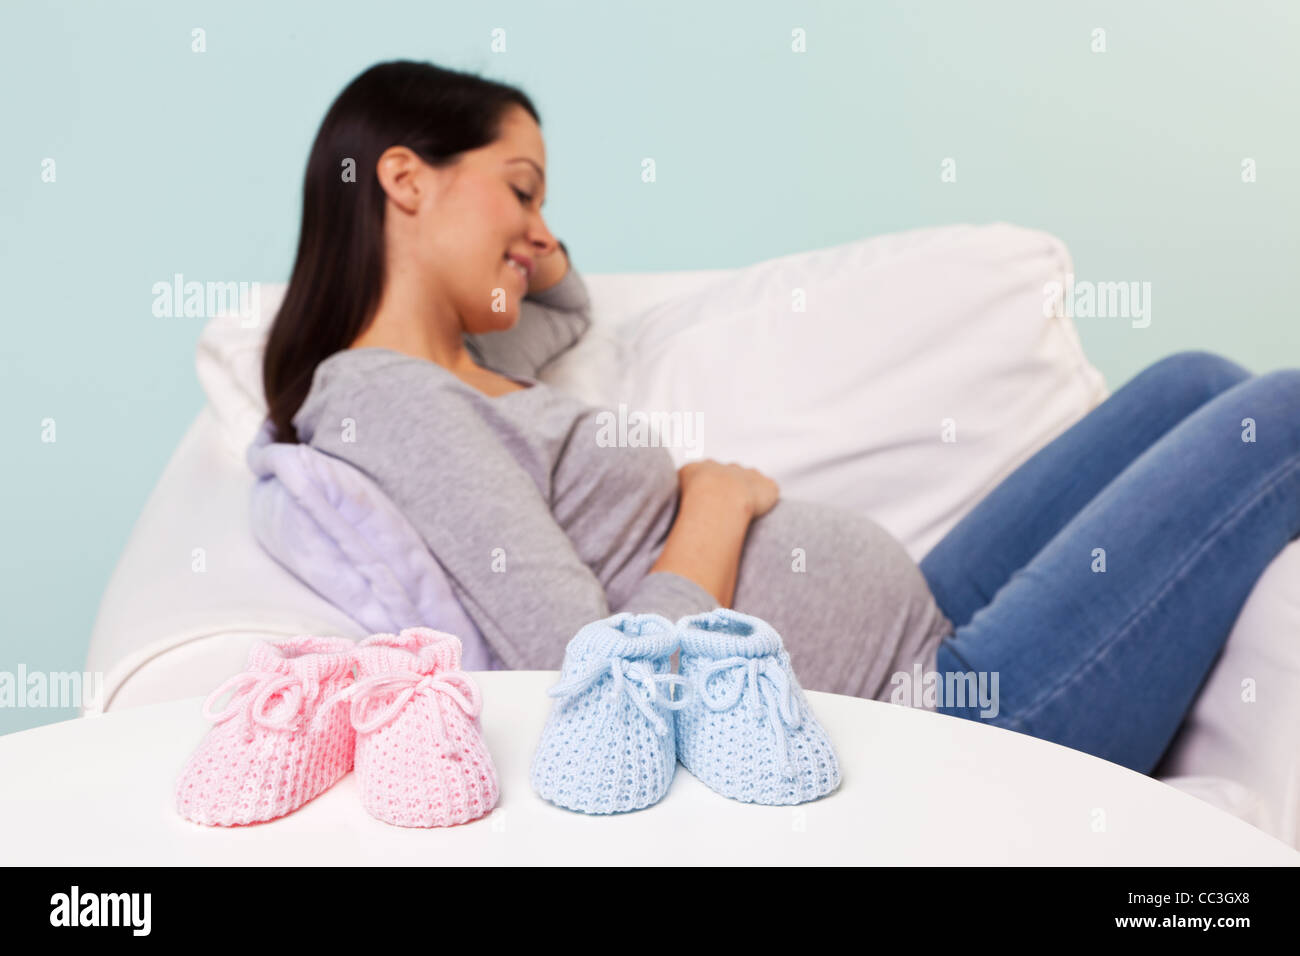 Photo of a pregnant woman at home sitting in an armchair with the focus on a pair of boy and girl knitted baby booties - Stock Image